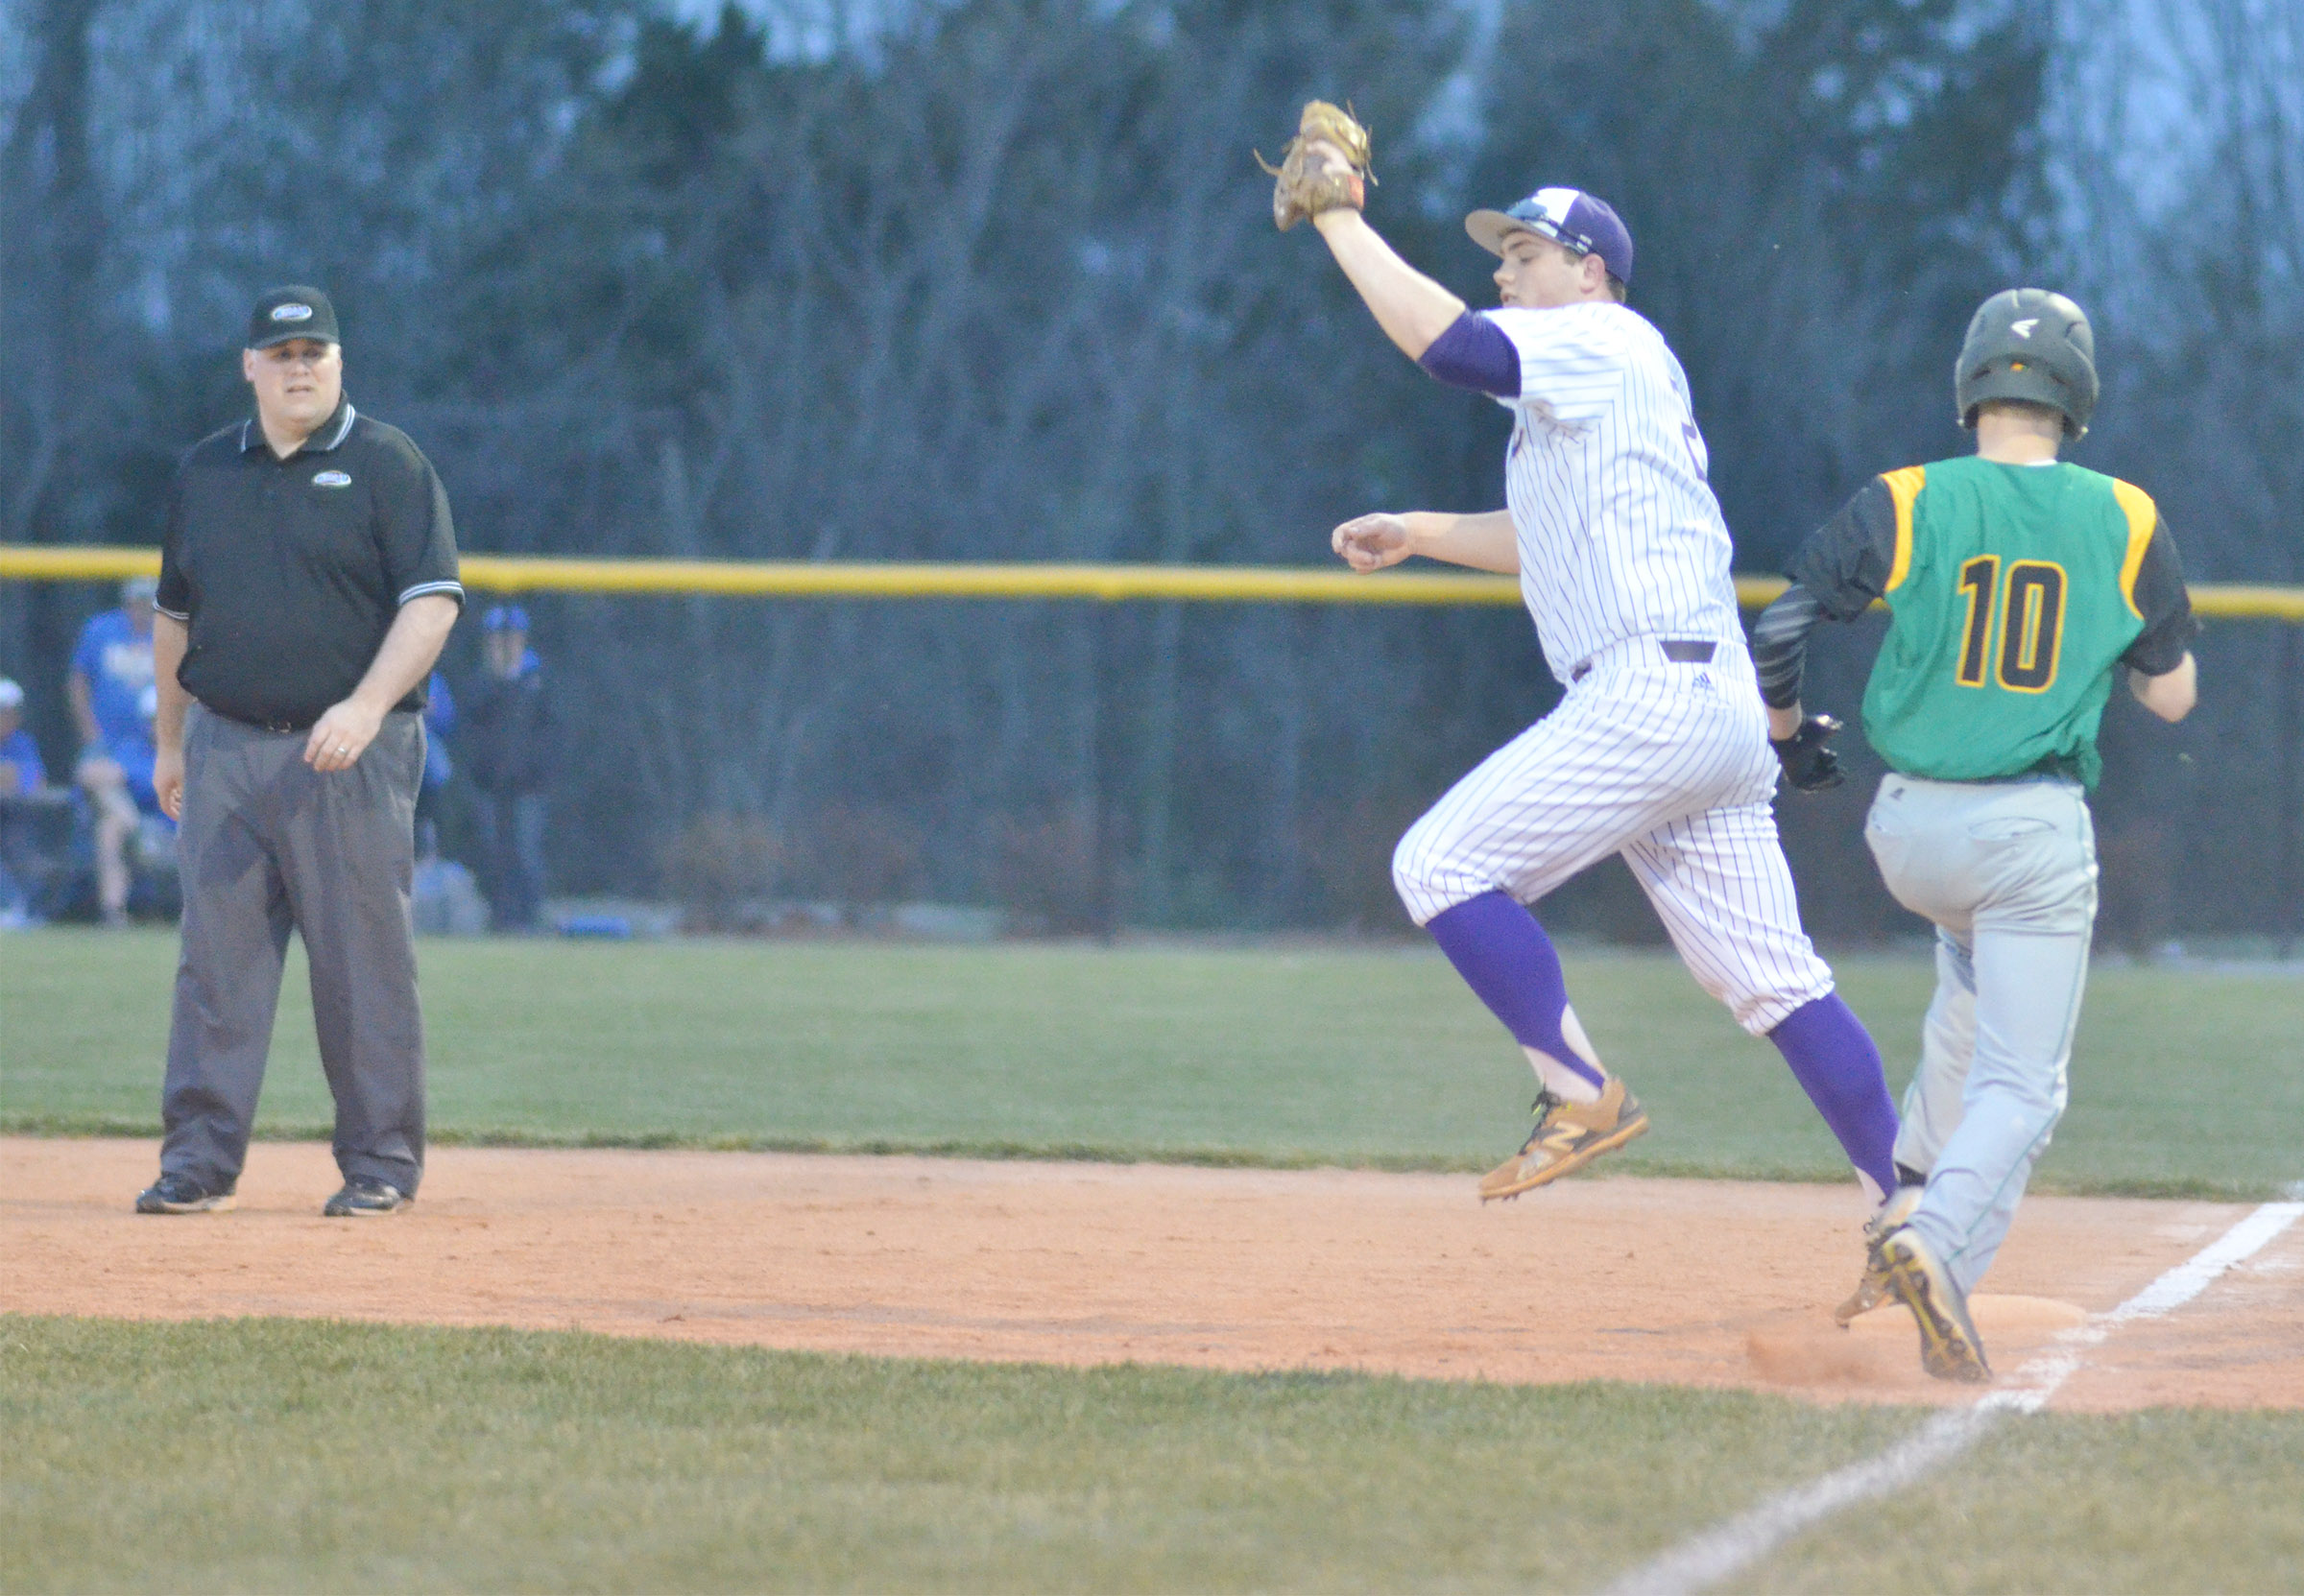 CHS sophomore Lane Bottoms gets an out at first.